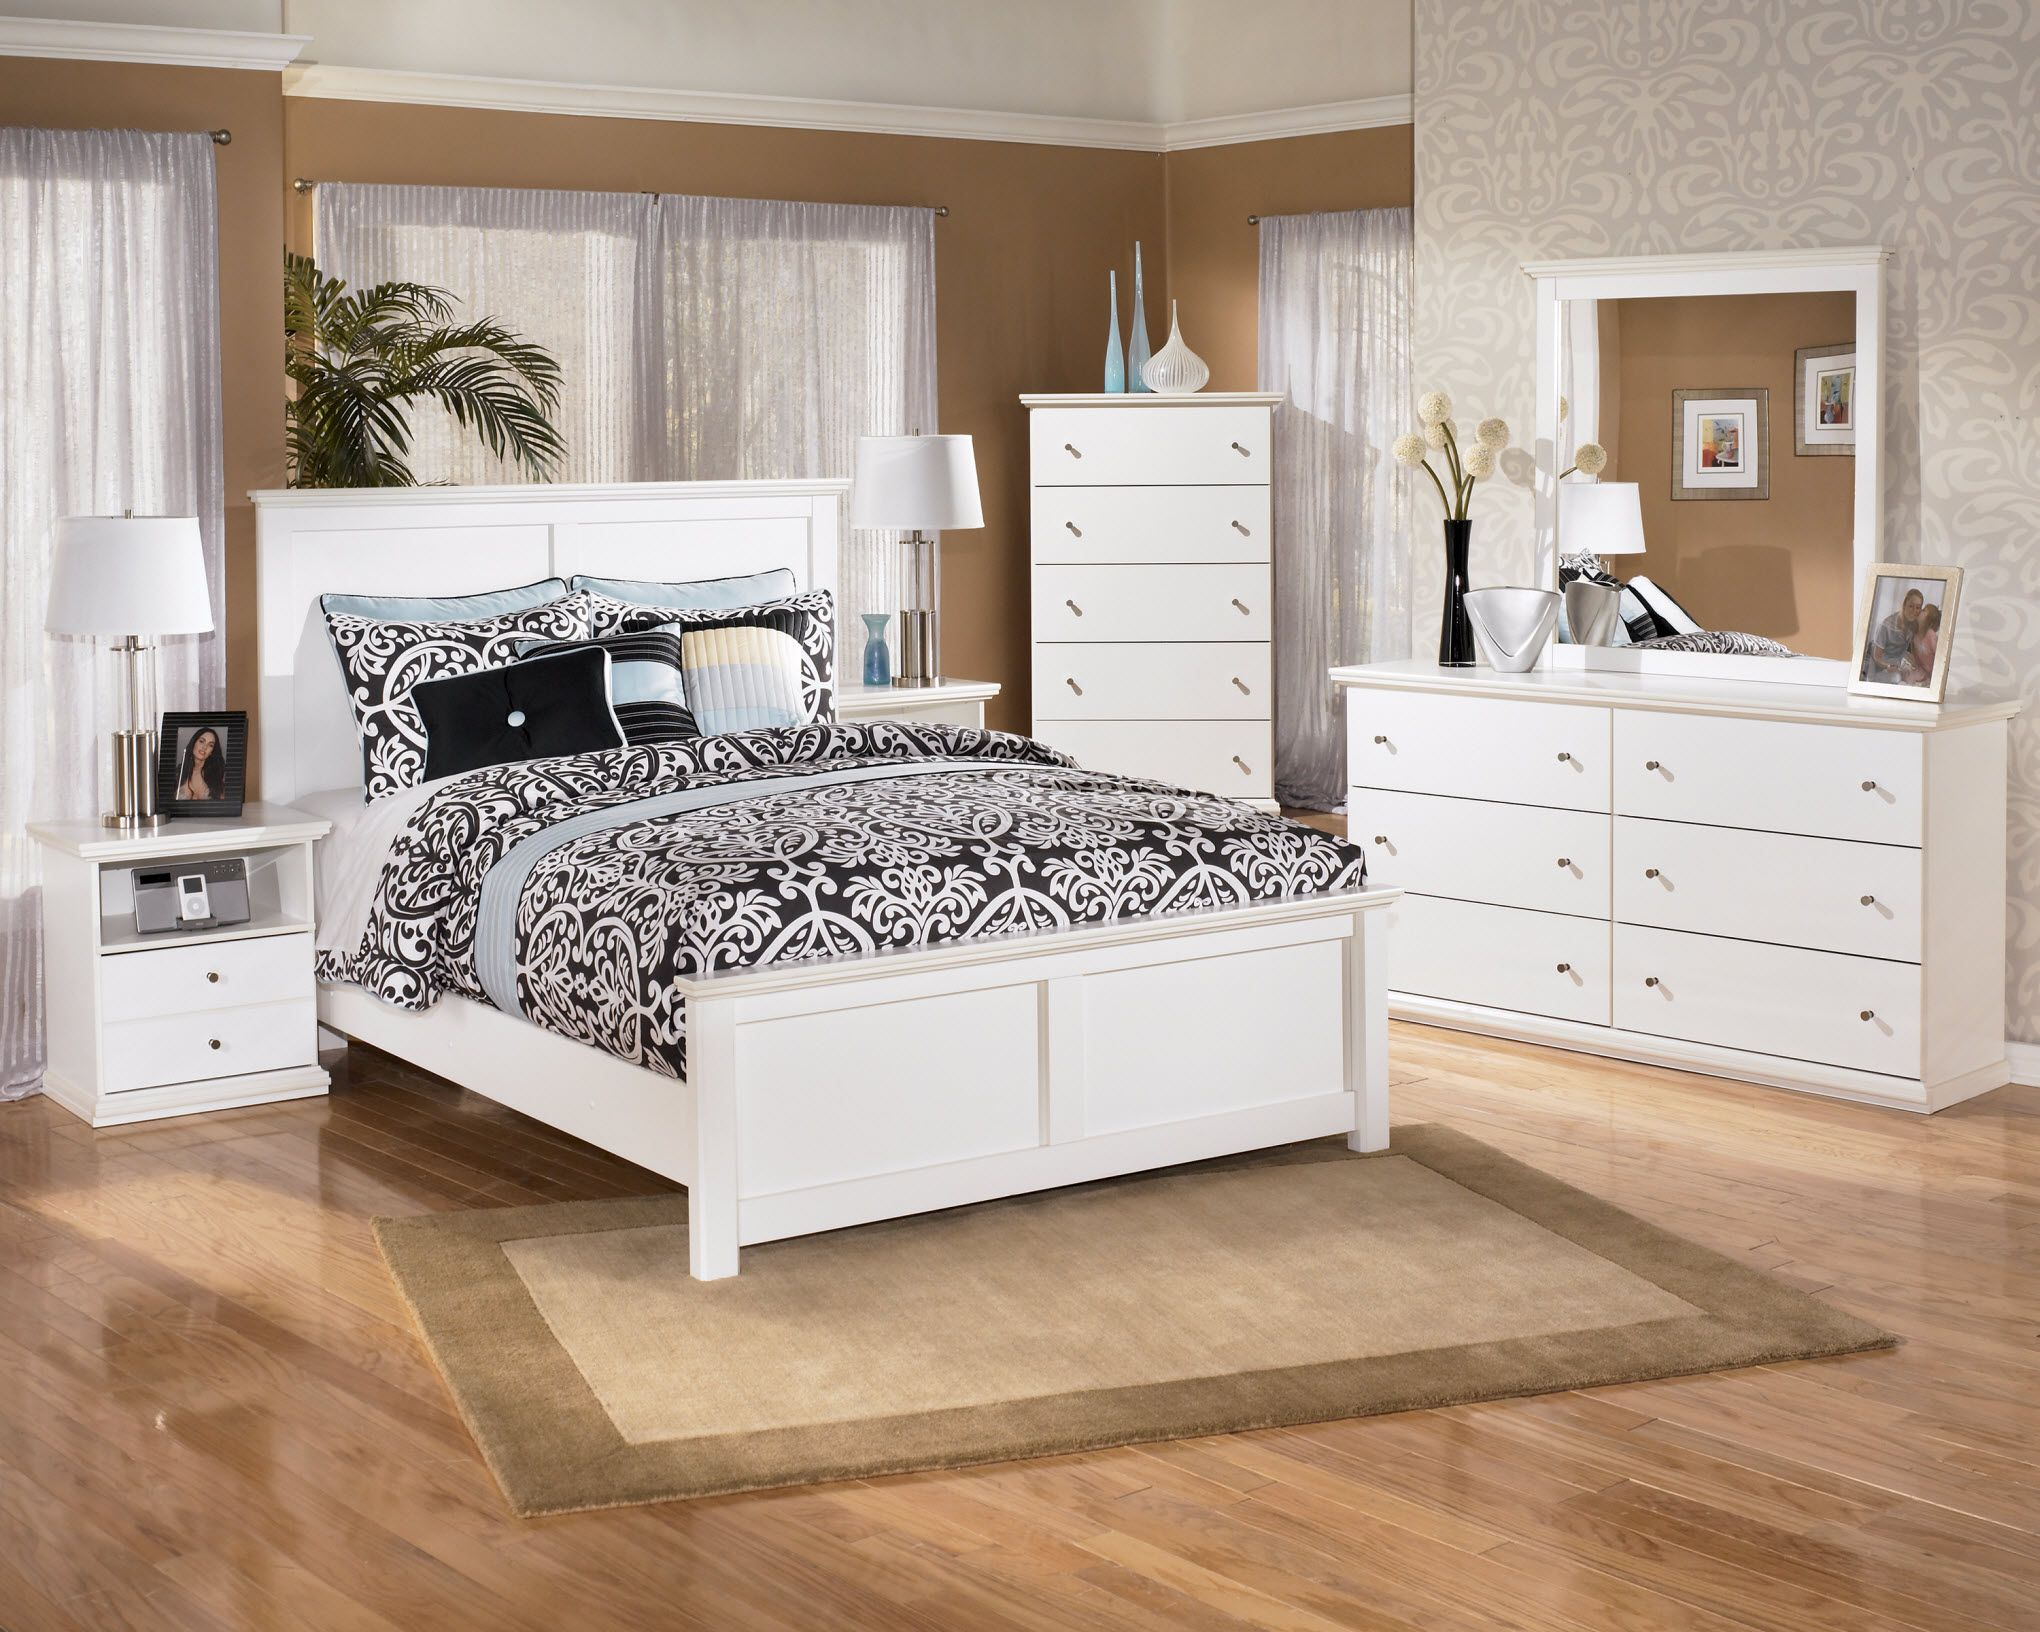 Ashley white bedroom furniture - Bostwick Shoals Solid White Cottage Style Bedroom Set Wholesale Furniture Stores Chicago Il